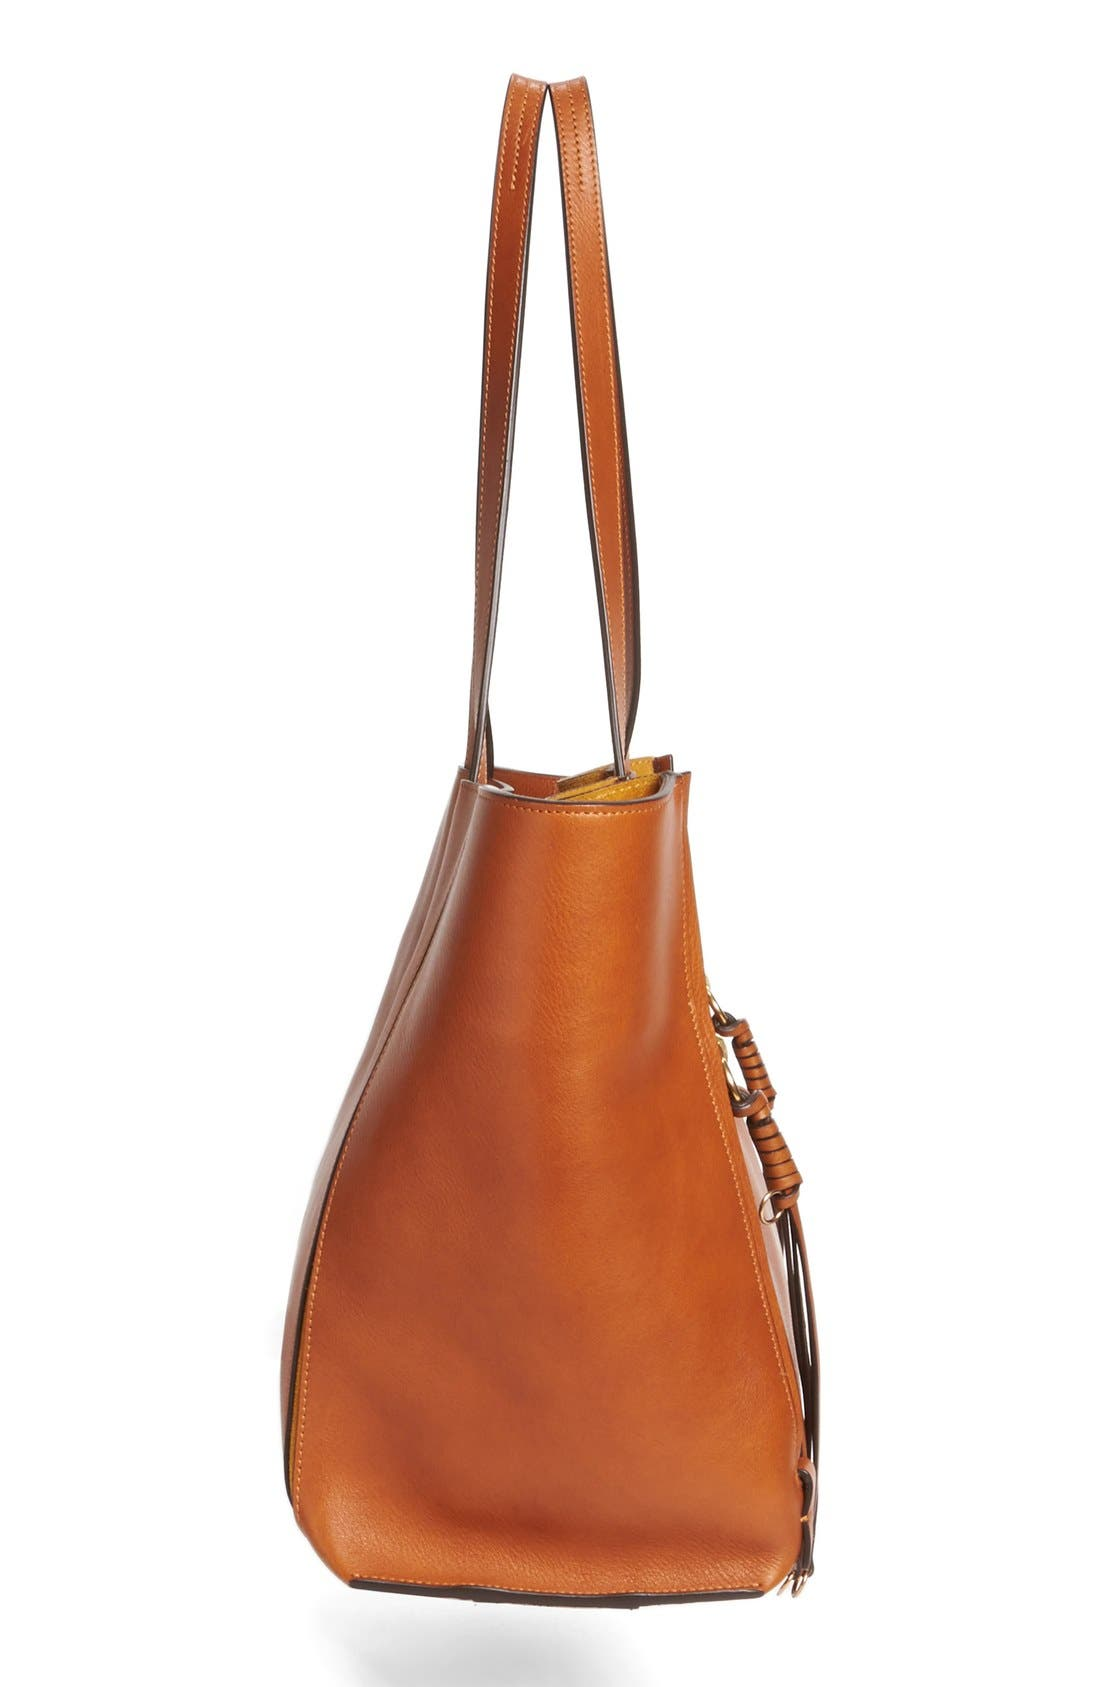 Medium Milo Calfskin Leather Tote,                             Alternate thumbnail 4, color,                             Caramel